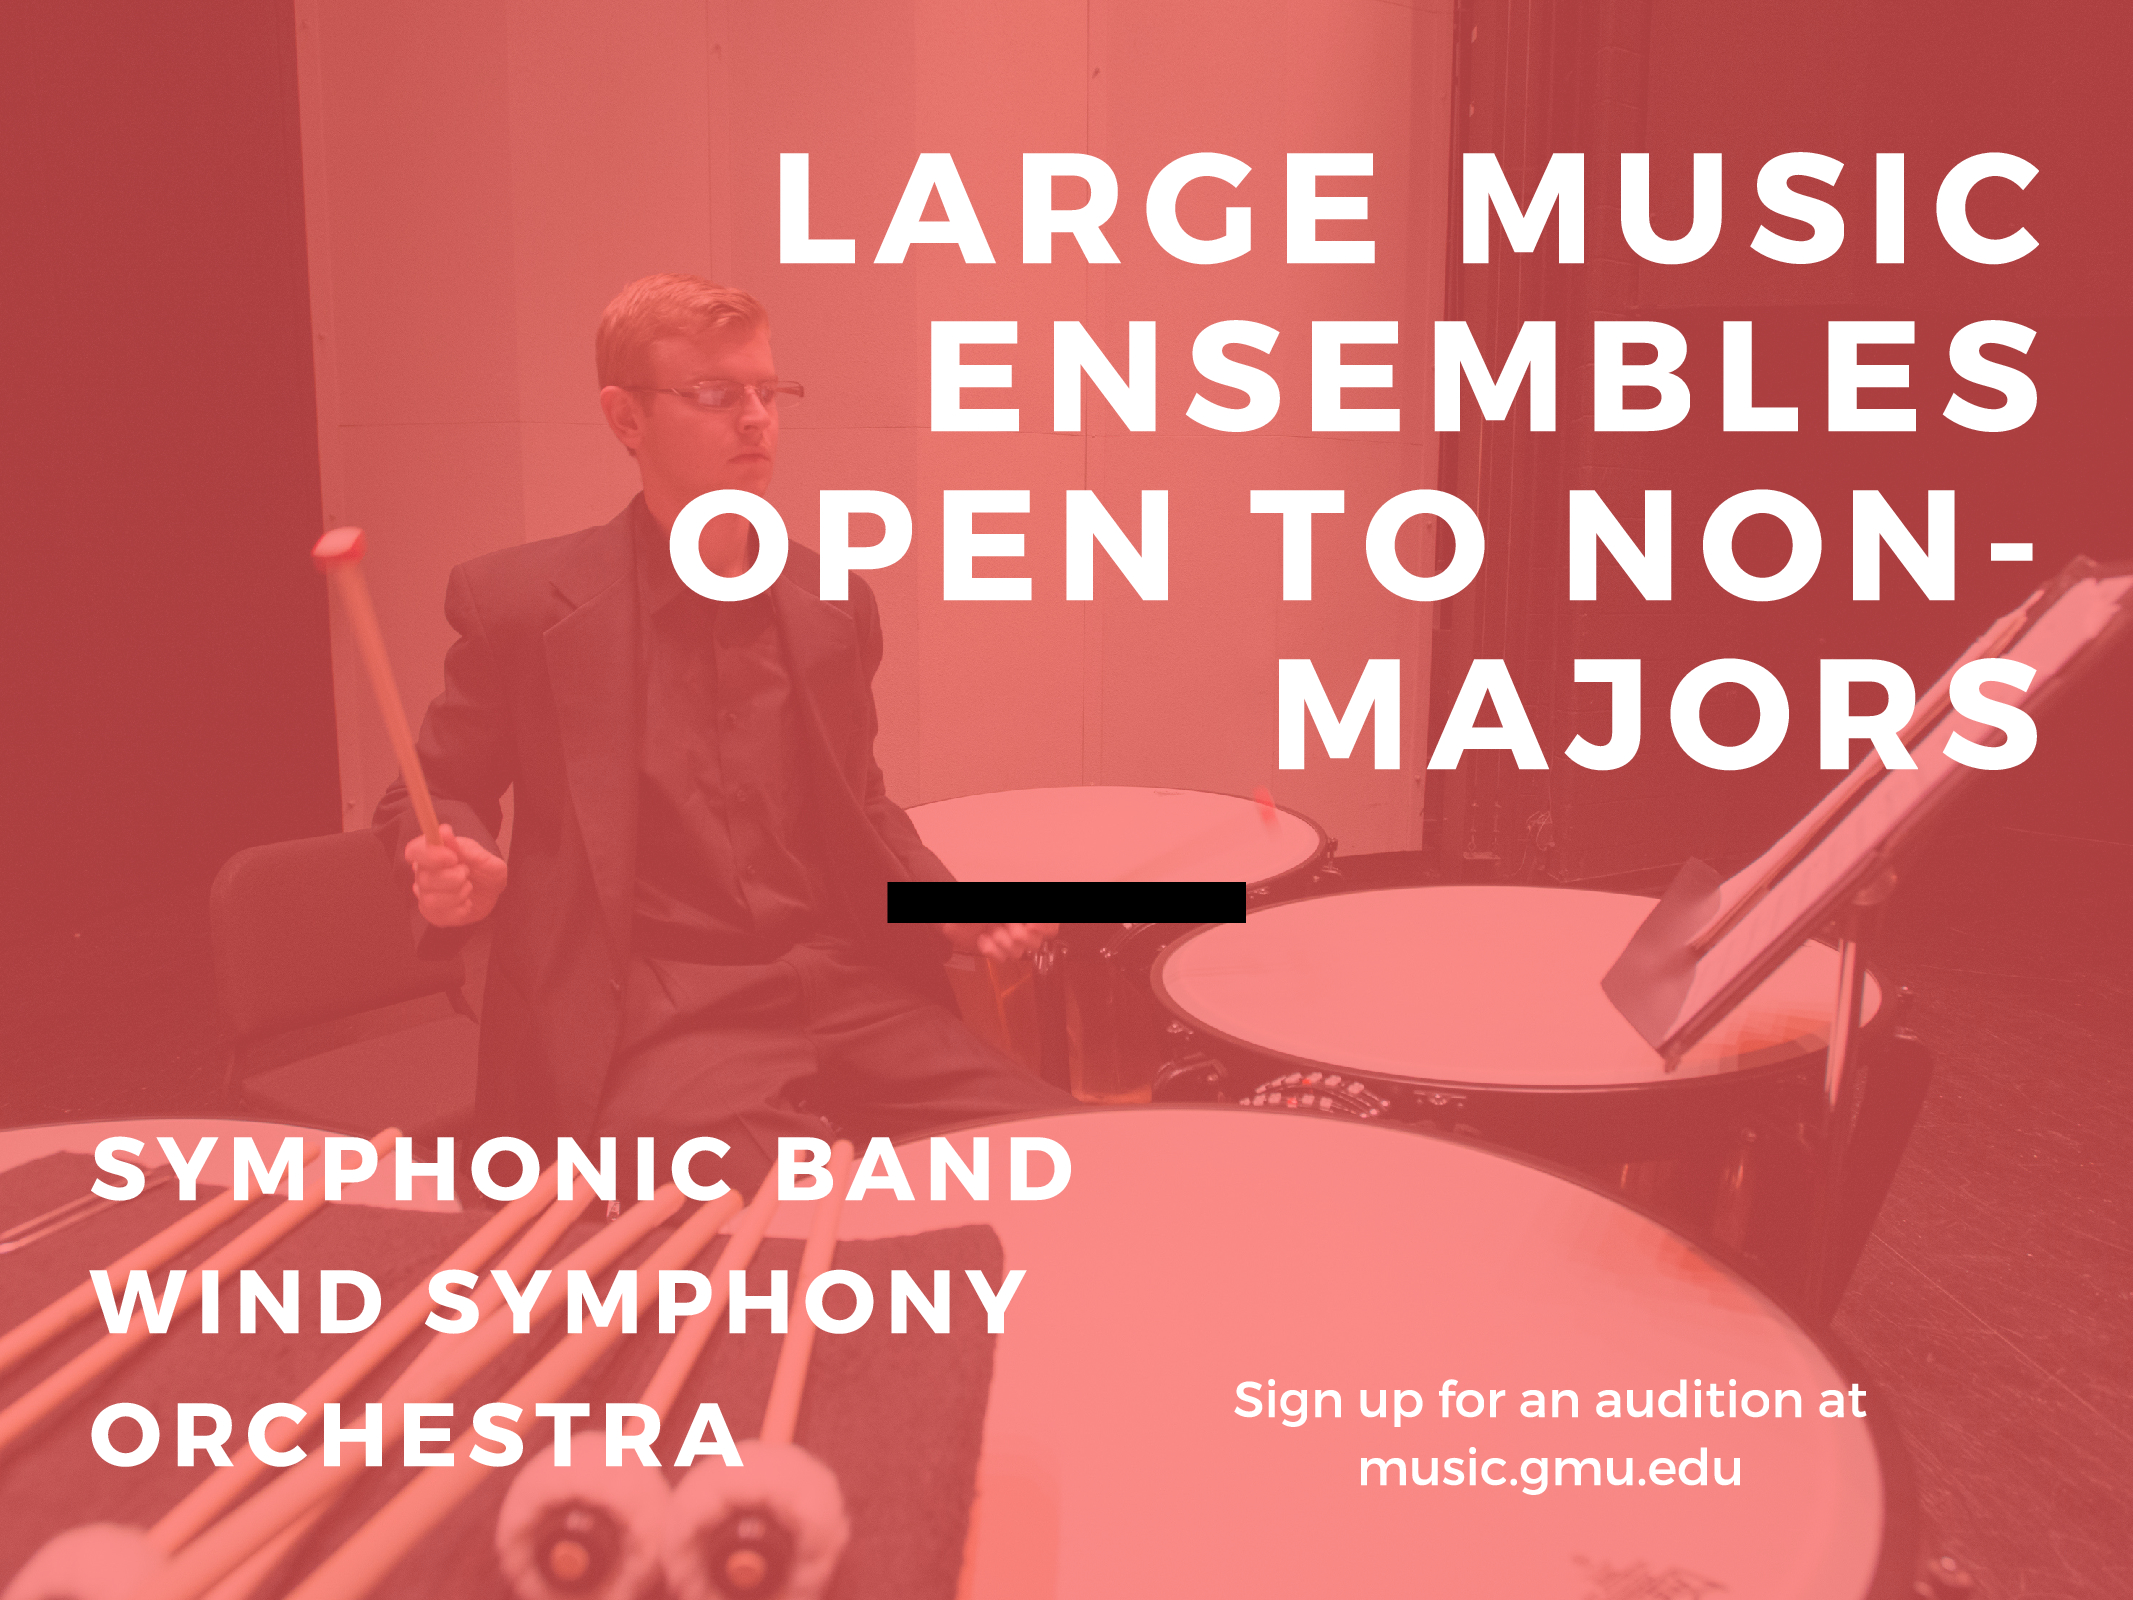 Information regarding Music Classes for Non-Majors is as follows Create Your Own Tags: is #musicatmason and Start date (when you would like your content to be posted) is August 14 2017 and End Date  (when you would like your content to be removed from the screens) is September 11 2017 and Email is adoughe5@gmu.edu and Name is Andrew Dougherty and File is Browse and File Name is case-studies-1_comp.jpg and Panel for your ad to be displayed is Main and Affiliation is Mason Department and Name of Ad/Event is Music Classes for Non-Majors and Group Name is School of Music and